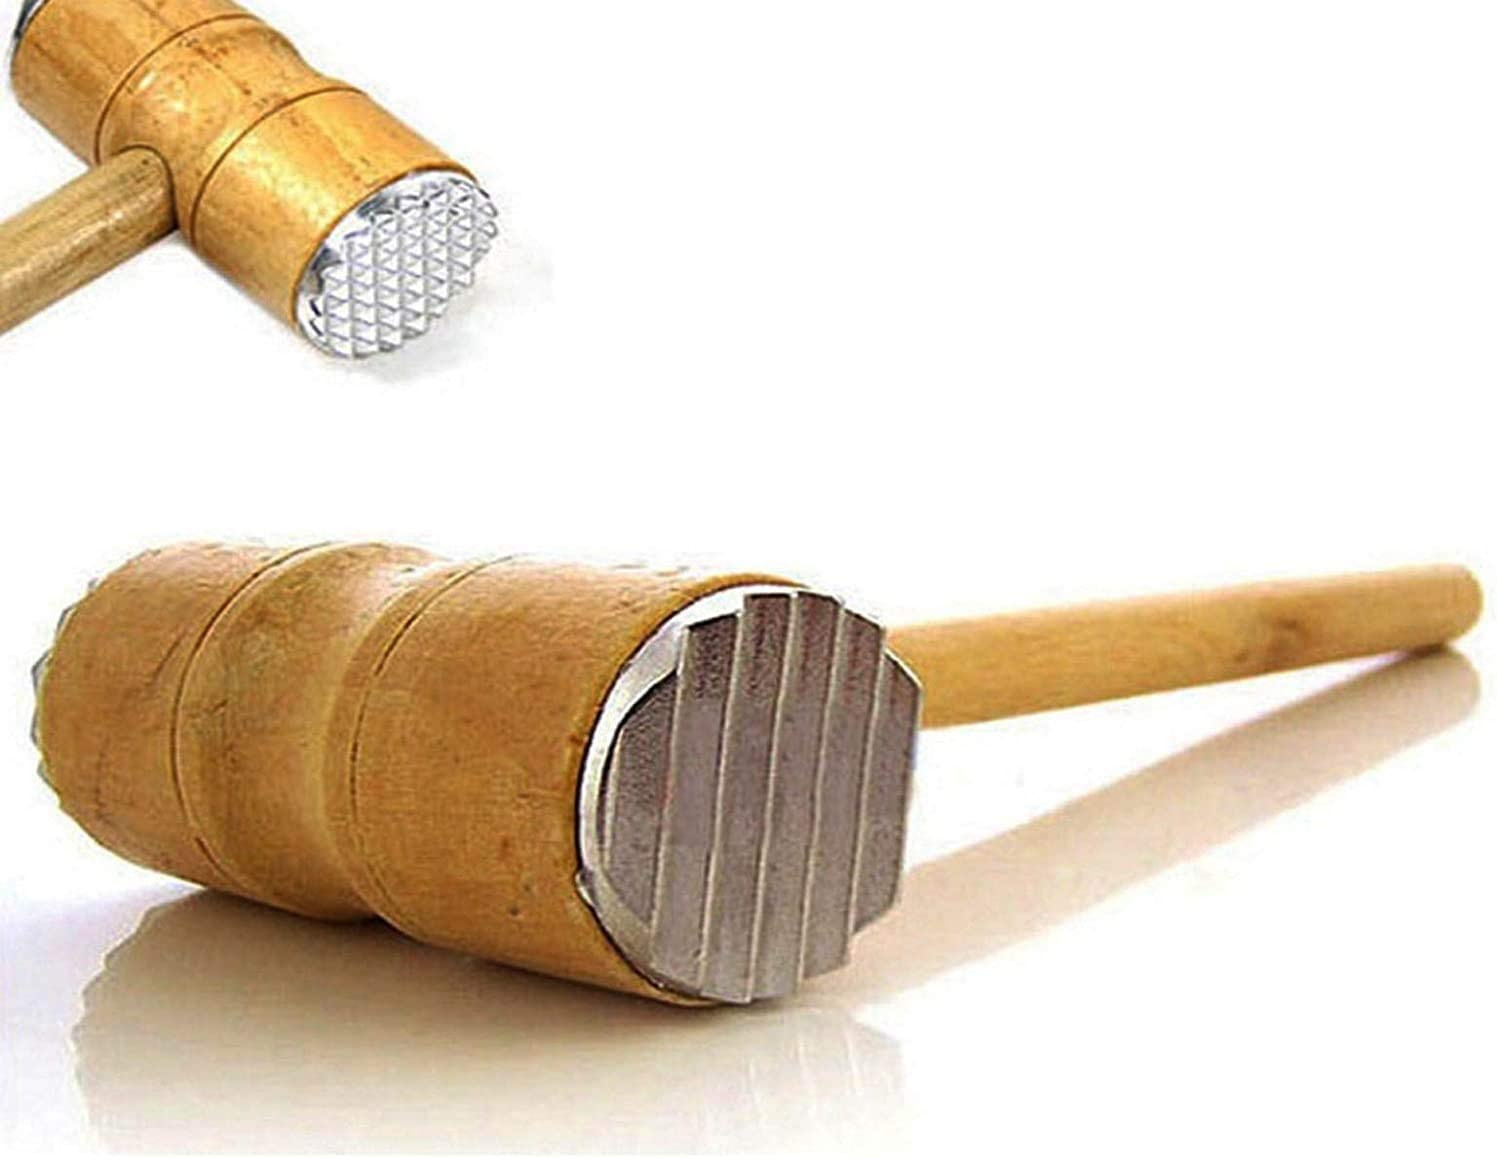 Meat Tenderizer Beef Hammer, Wooden Handle Meat Mallet Tool For Kitchen & BBQ, Suitable for Chicken, Steak, Fish and Pork